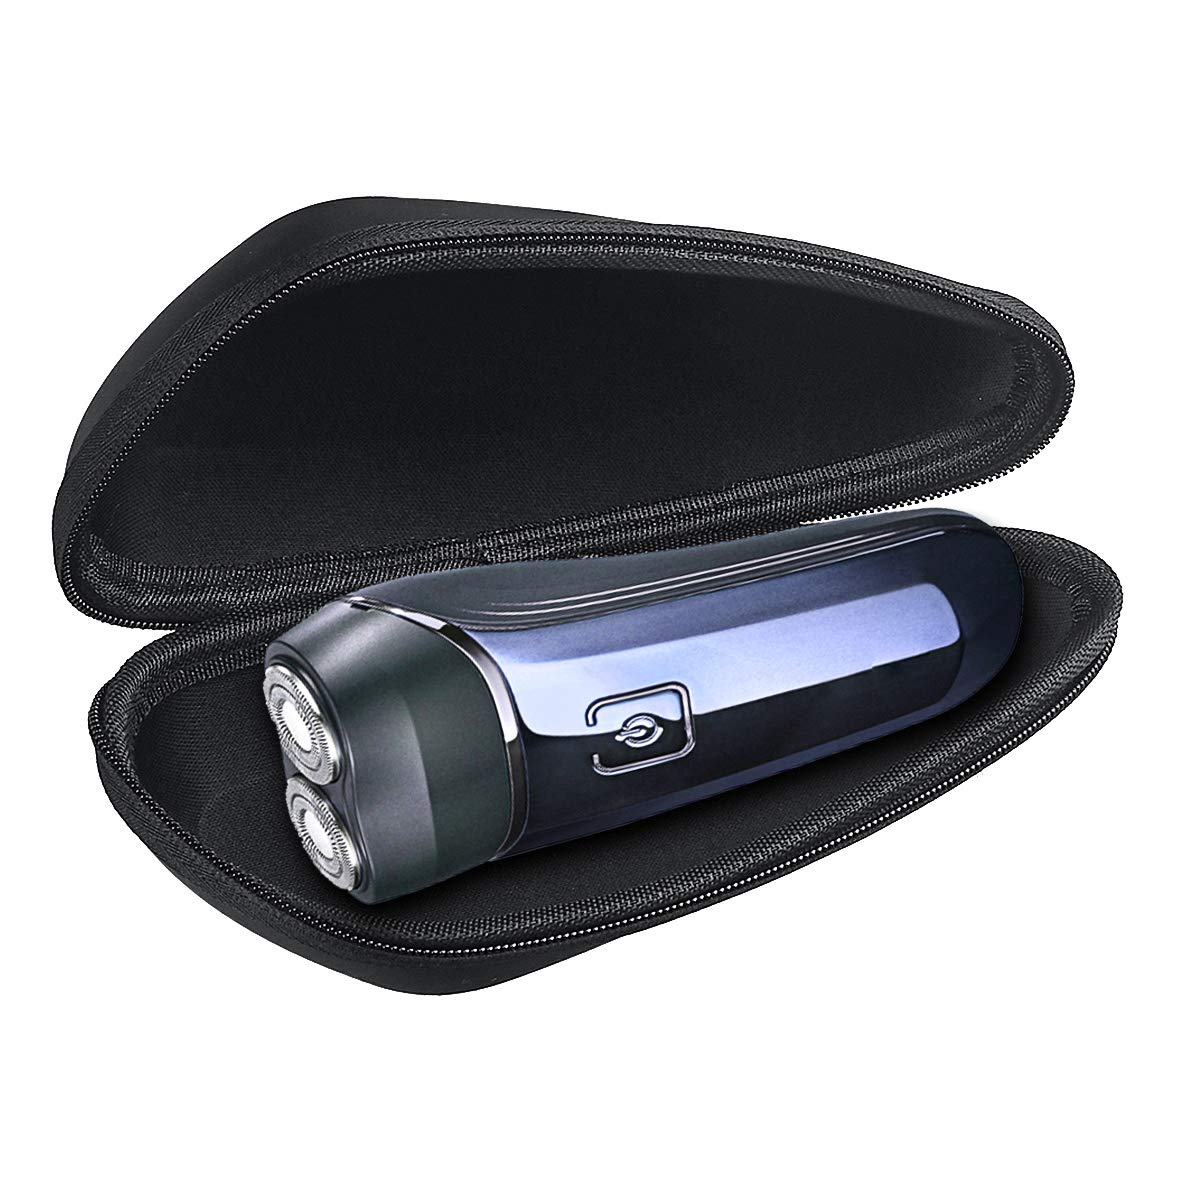 Hard Case For Philips Norelco 3100 6400 2100 4500 6100 Philips AquaTouch S5420/06 Philips S5320/06 Series 5000 Men Shaver Razor Travel Carry Cover Bag Protective Box